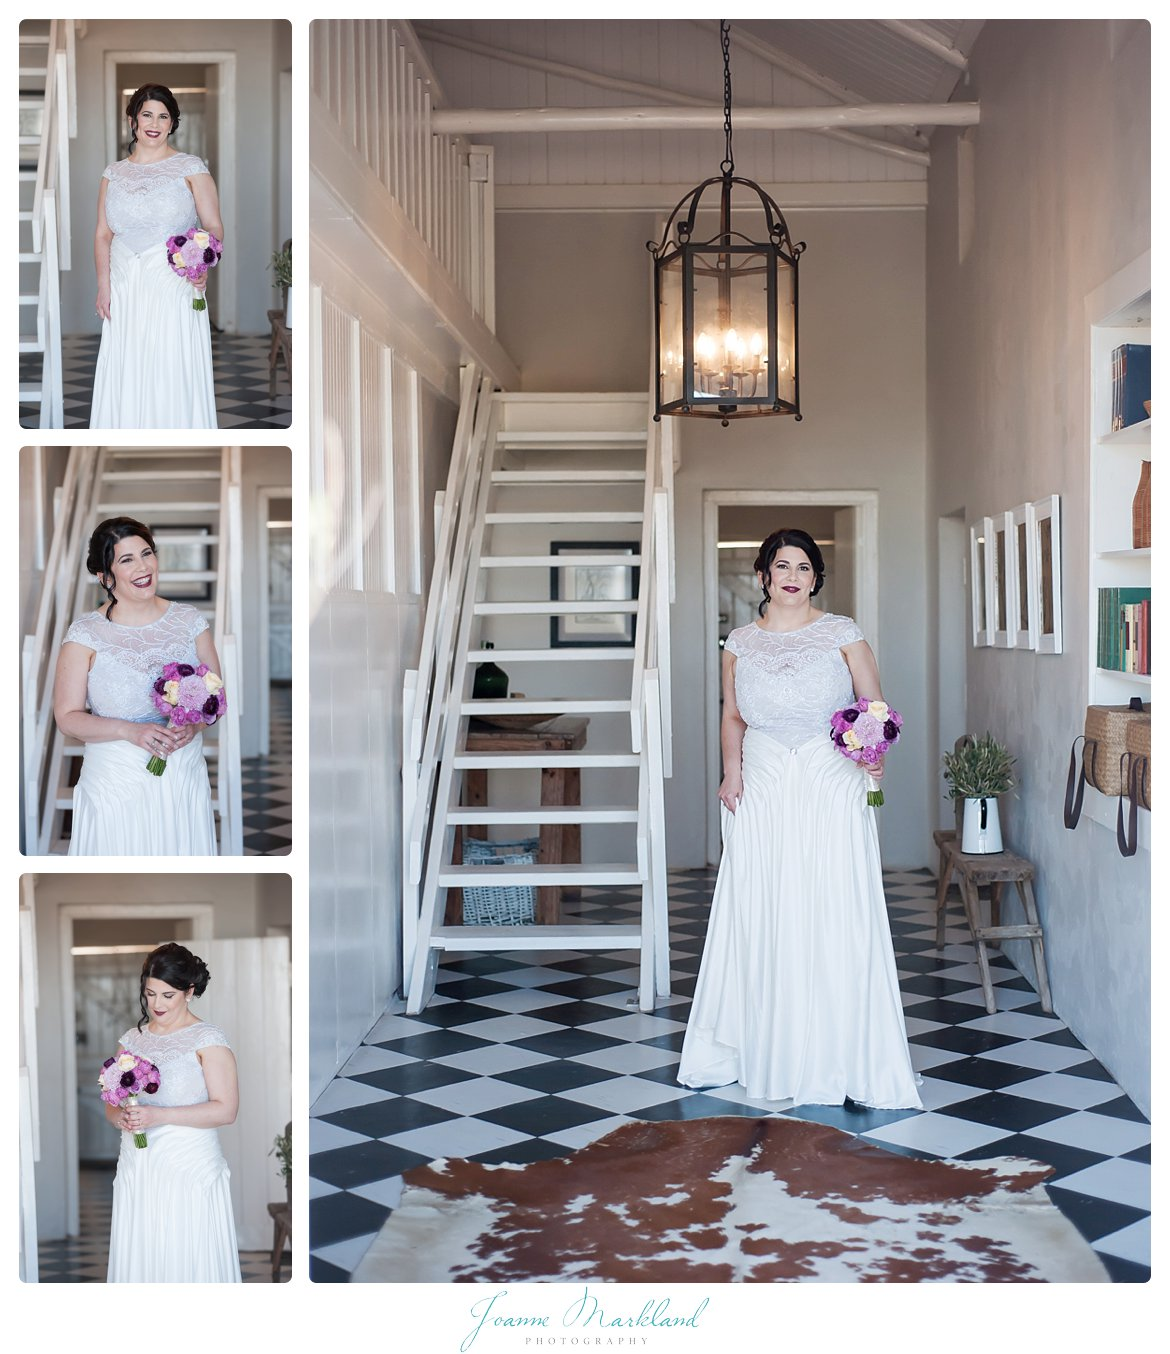 boorwater-wedding-hopefield-west-coast-cape-town-joanne-markland-photography-009